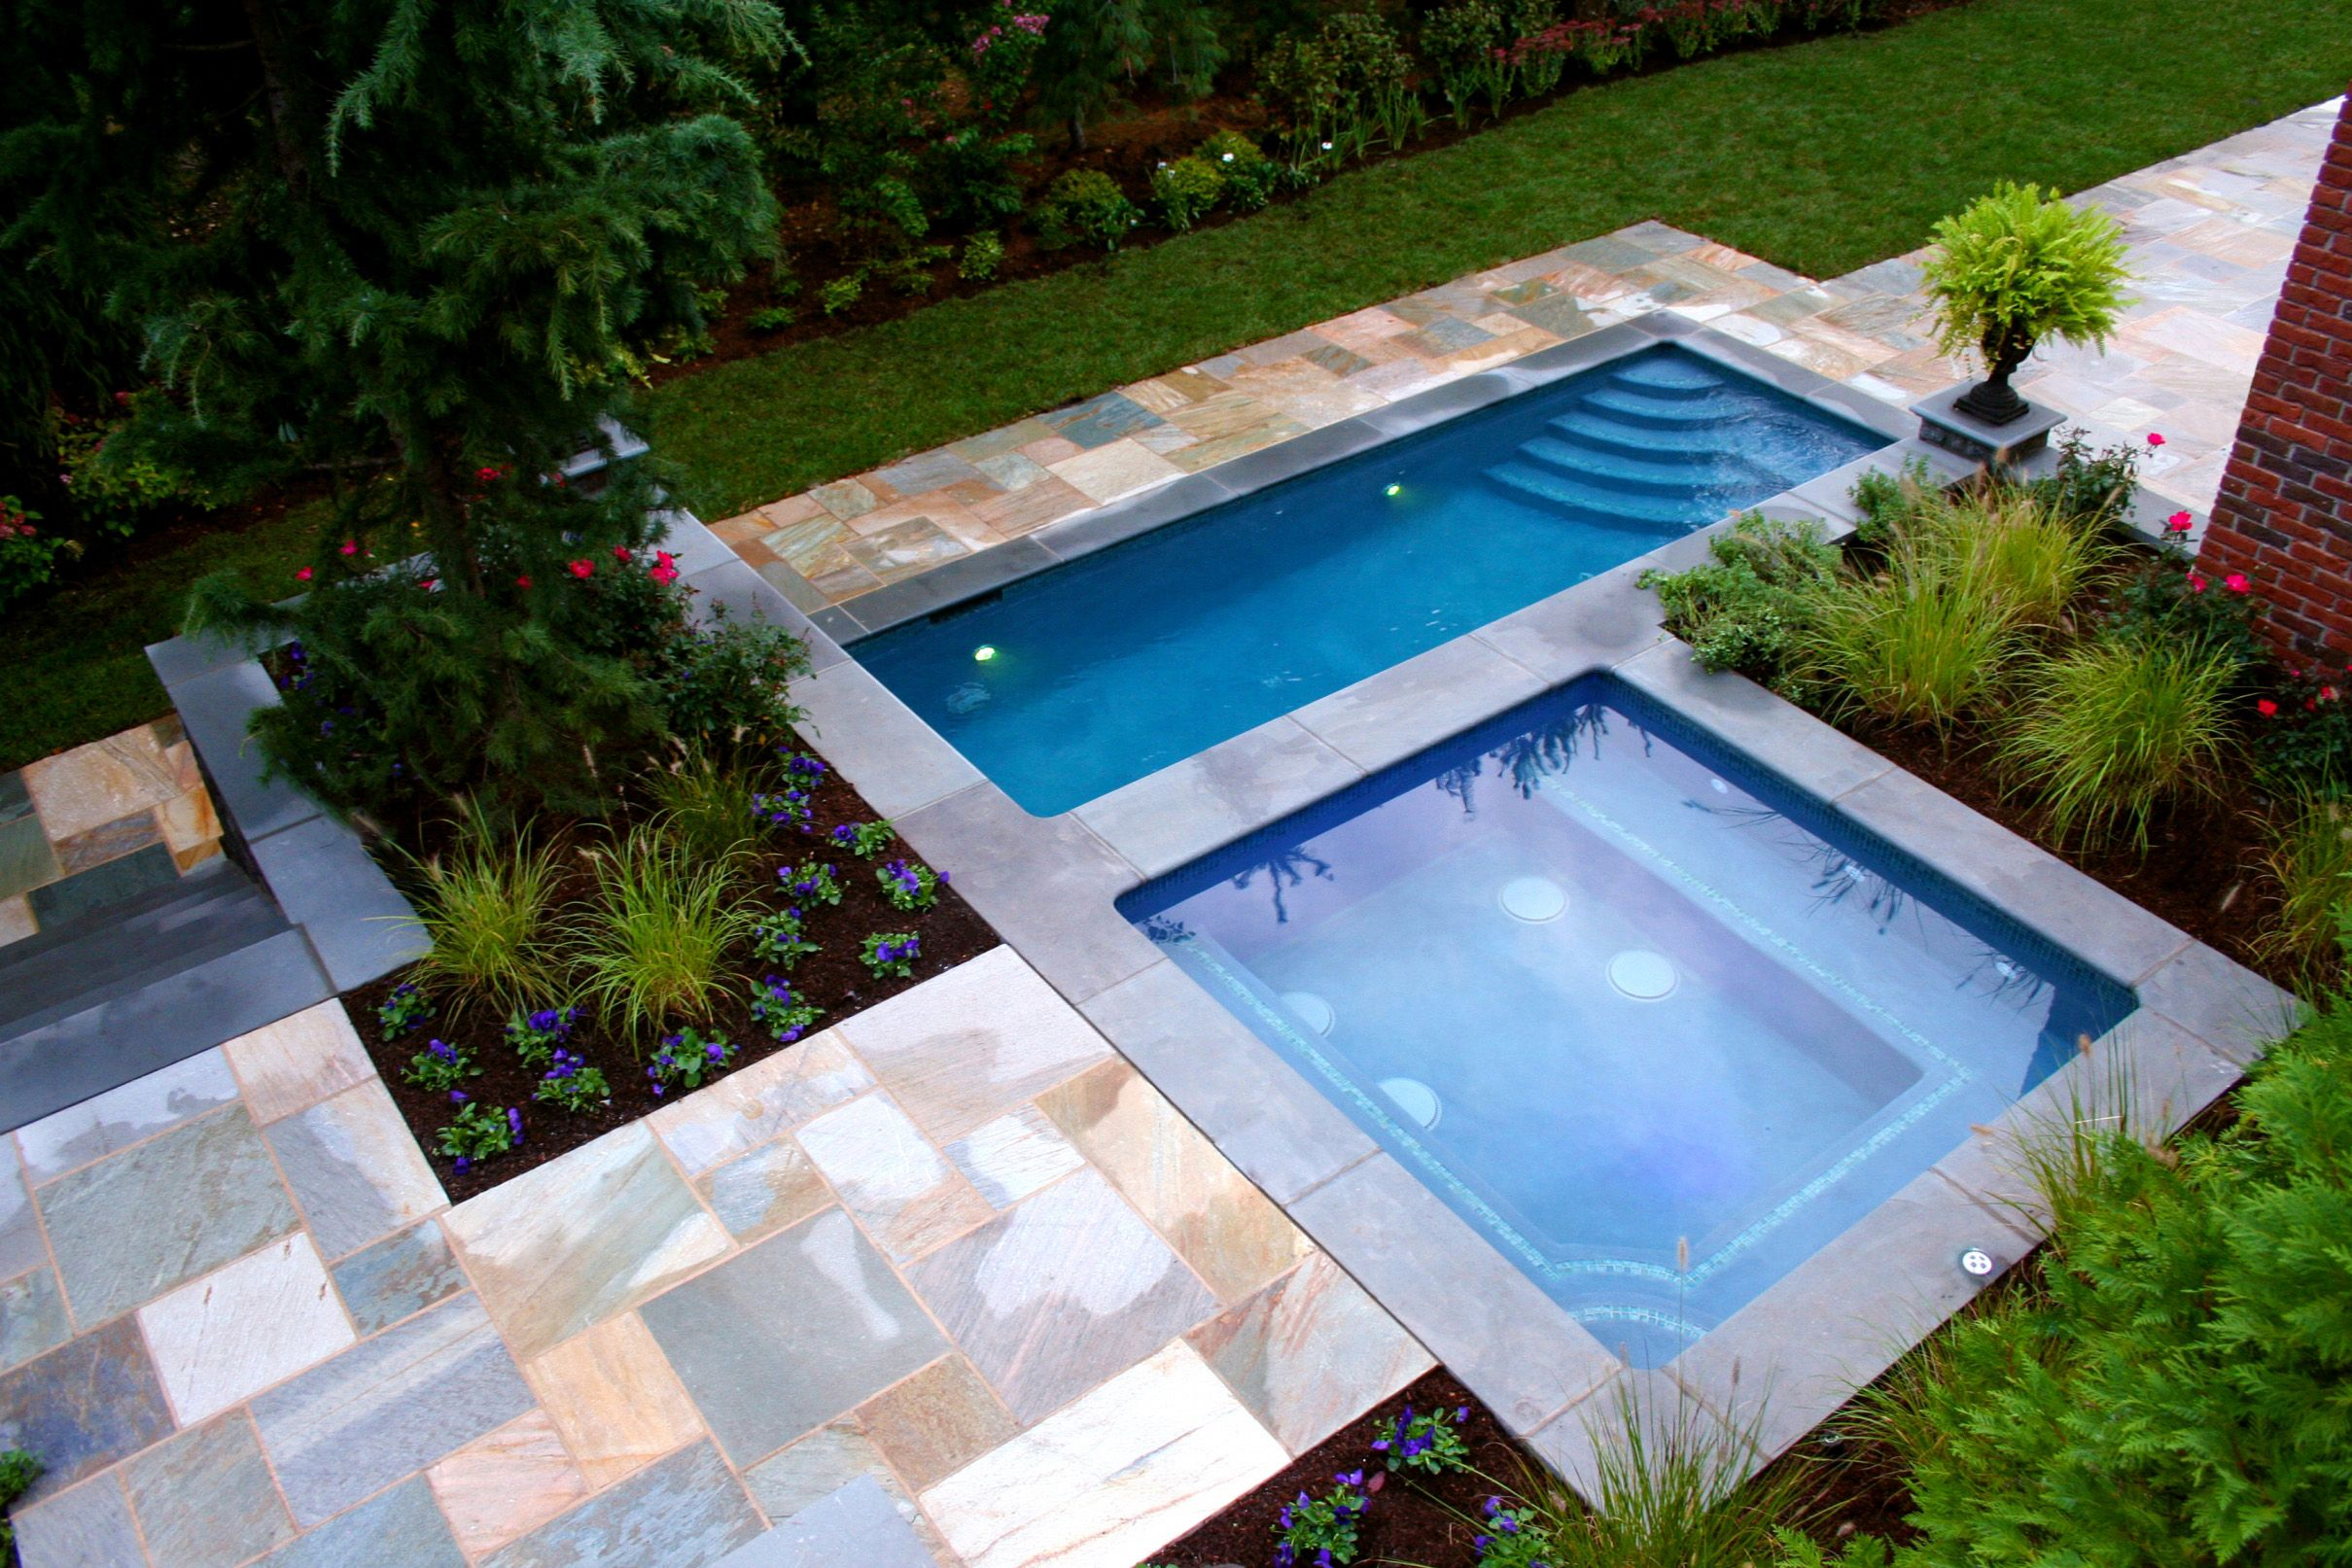 Classy Double Square Small Inground Pools With Green Field